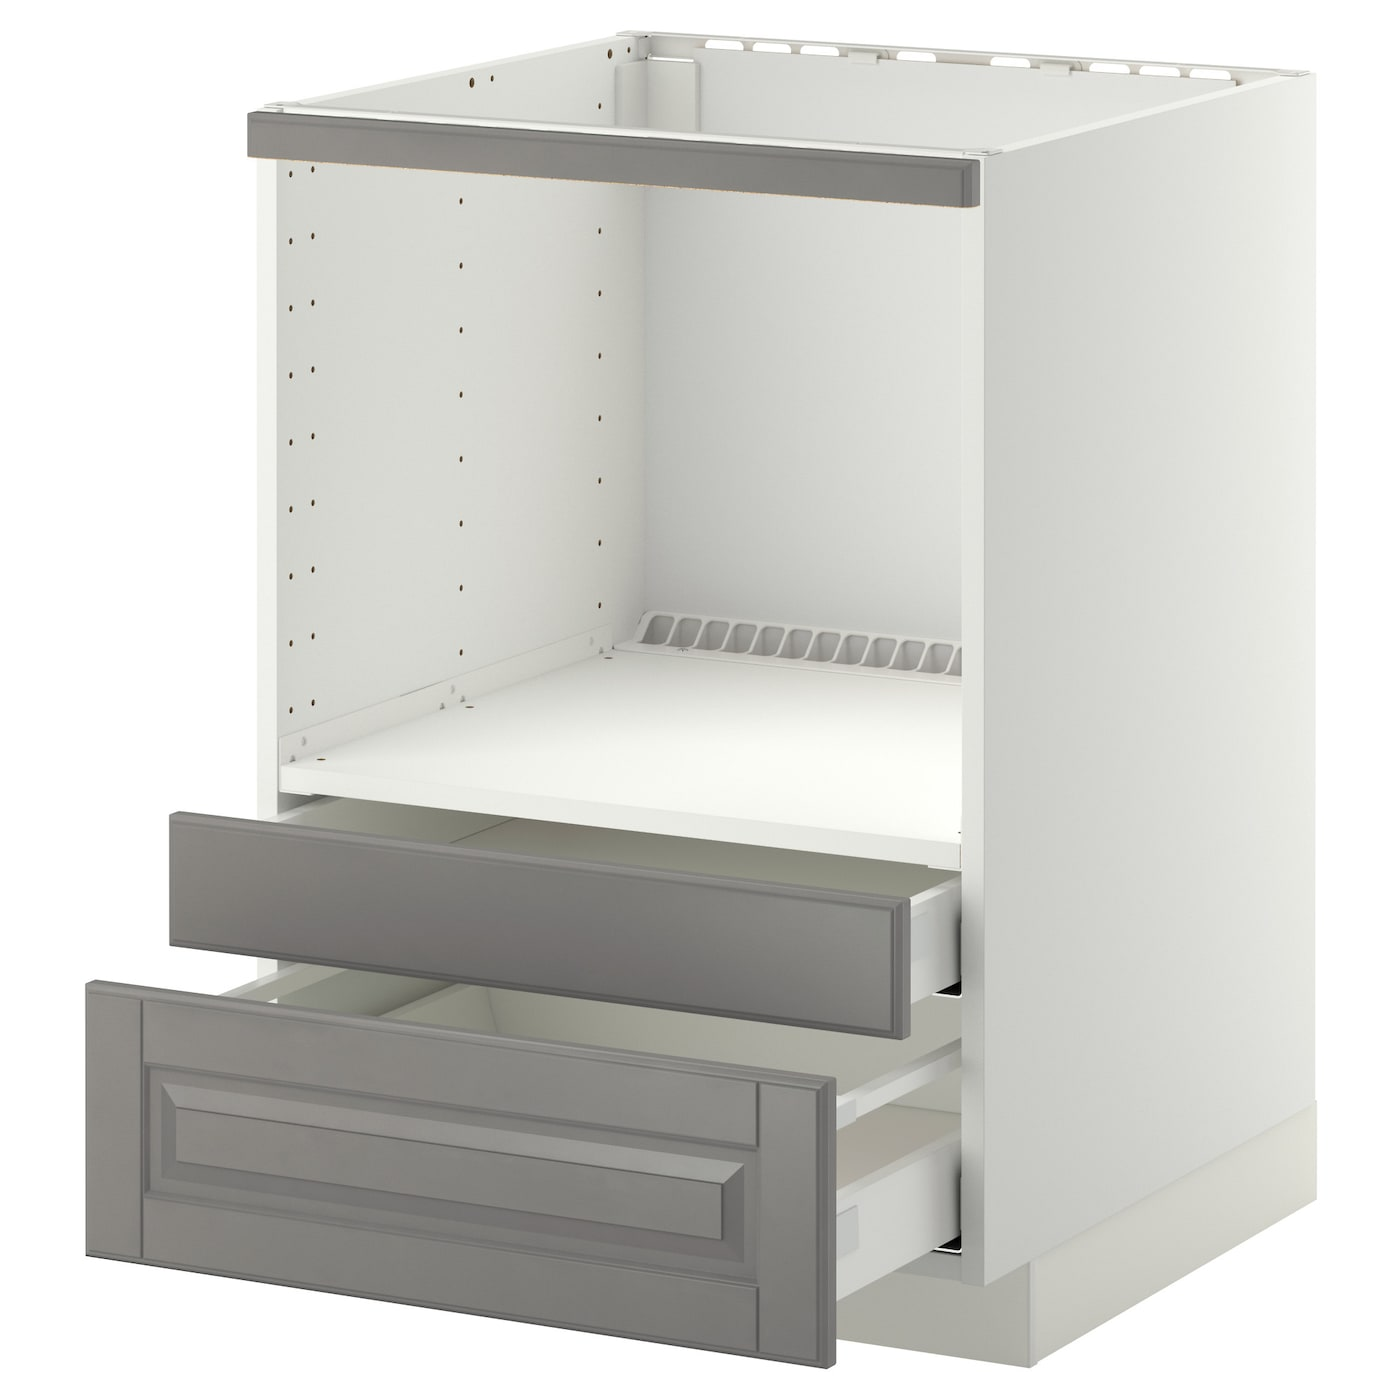 IKEA METOD/MAXIMERA base cabinet f combi micro/drawers Smooth-running drawers with stop.